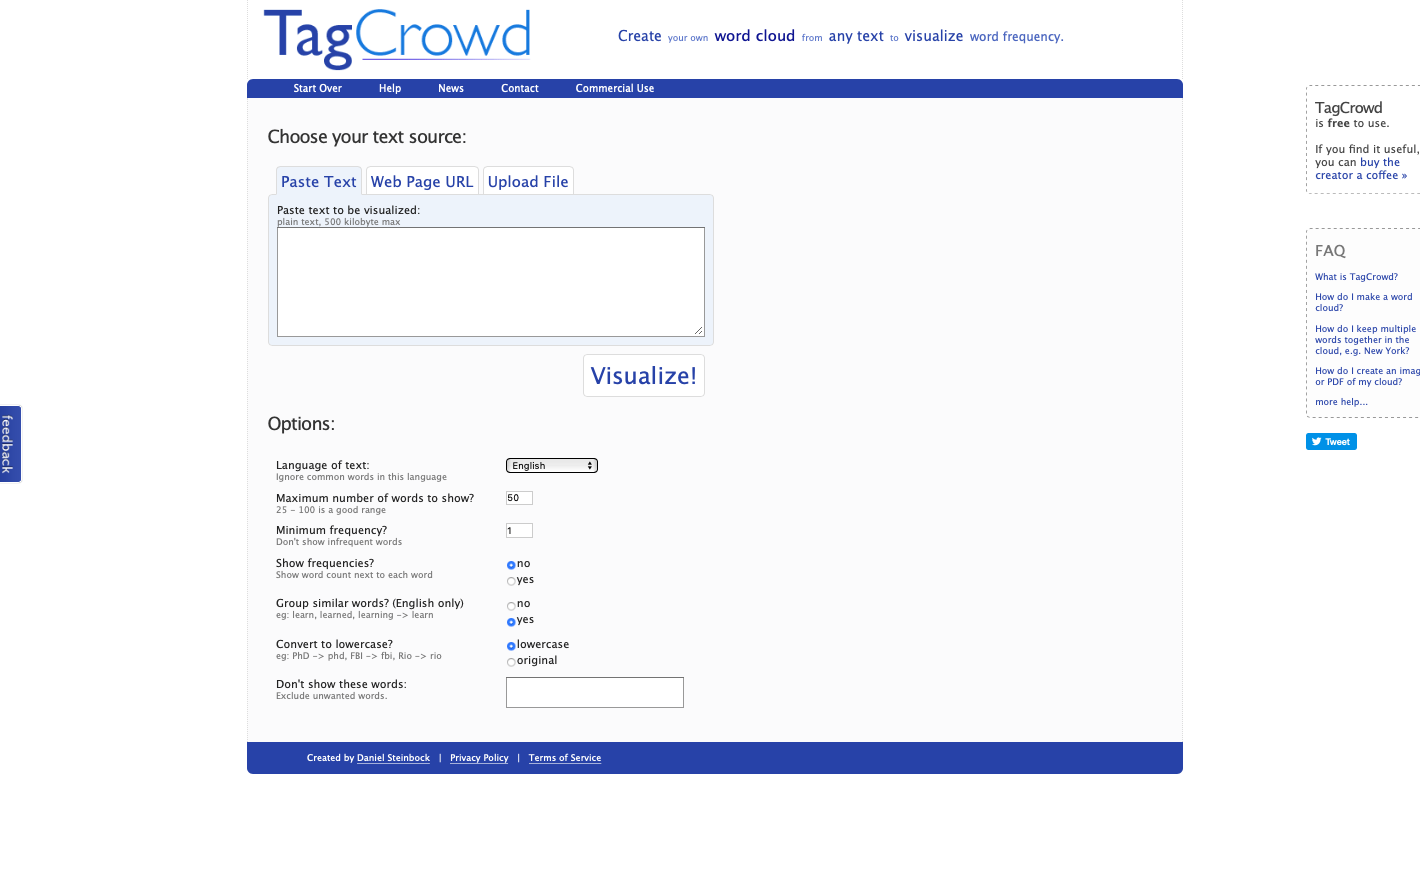 tagcrowd_top_page